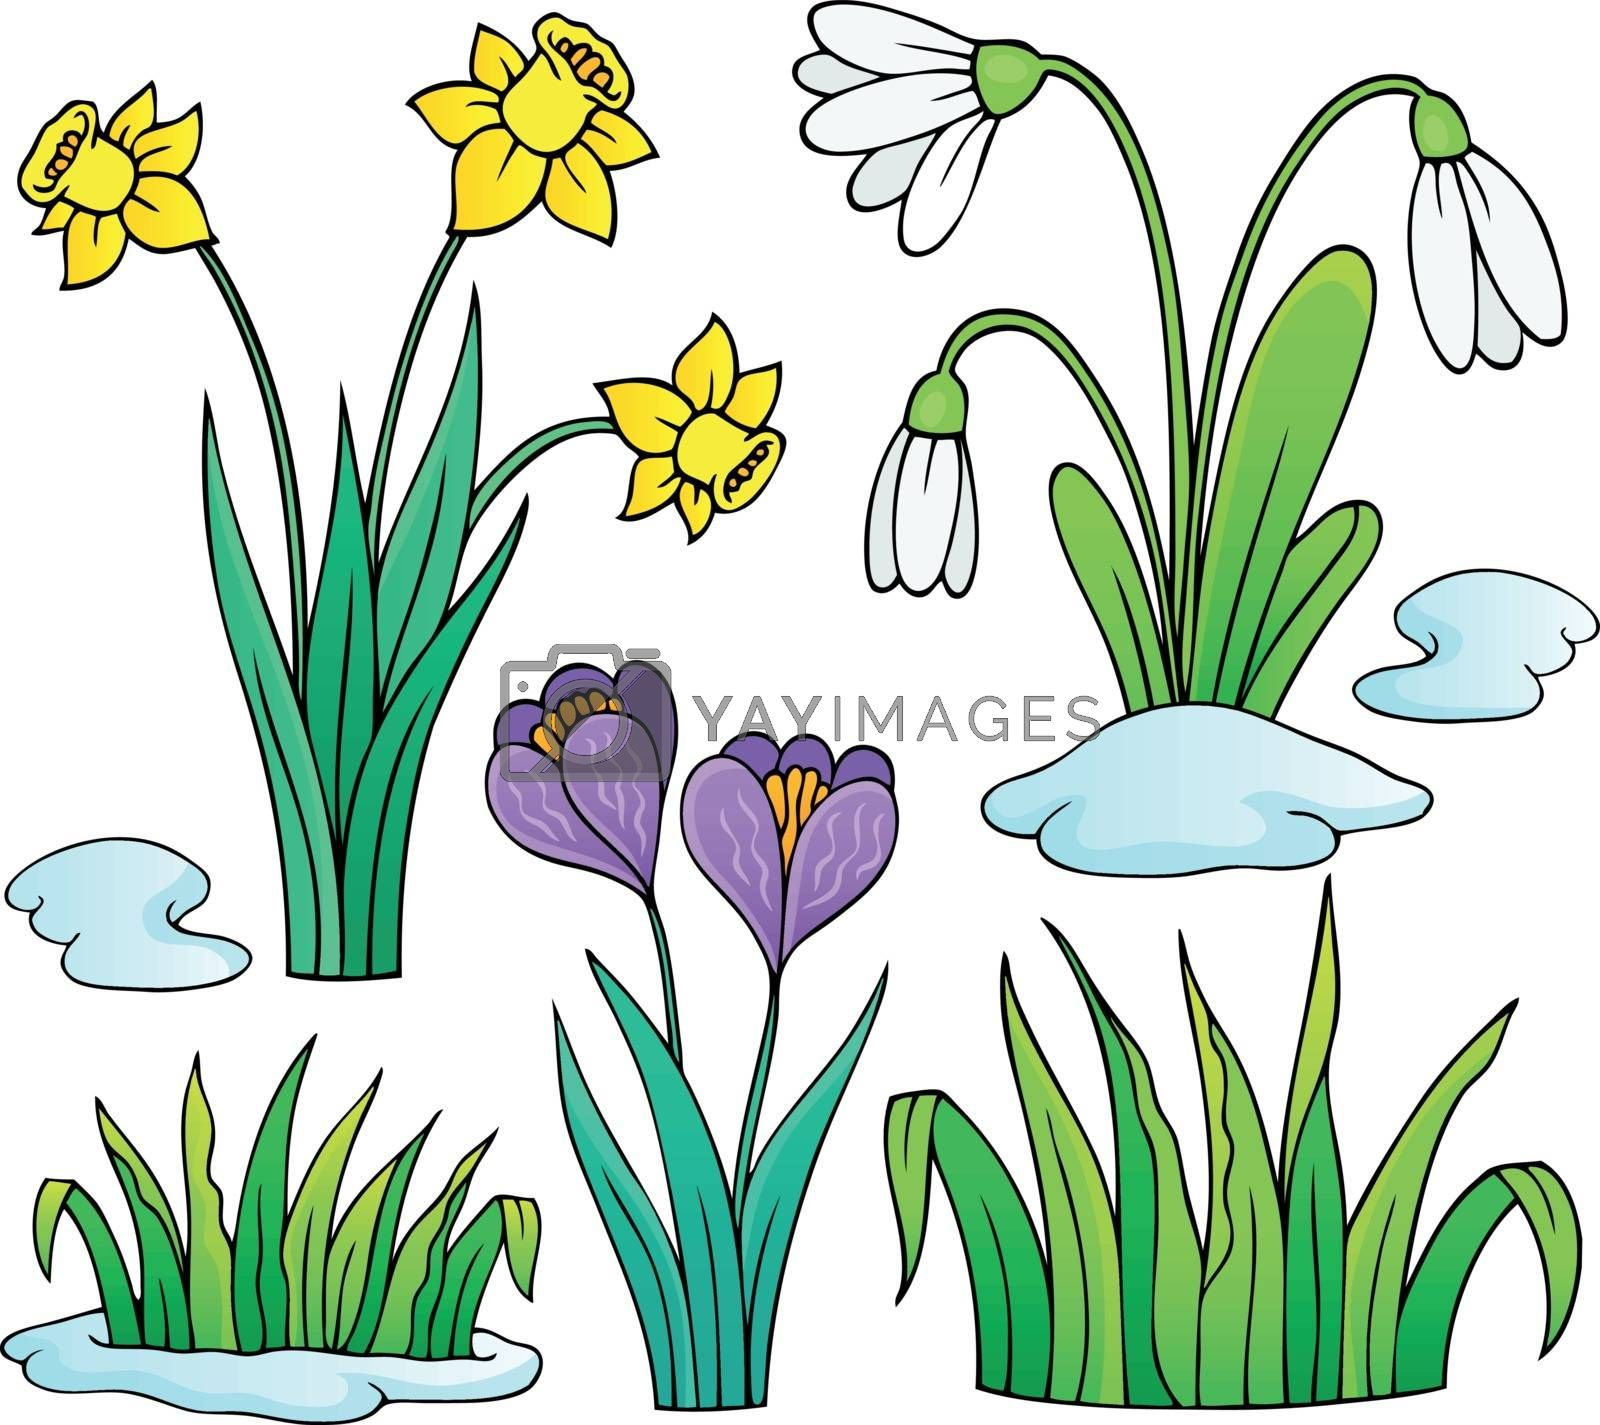 Early spring flowers theme set 1 - eps10 vector illustration.